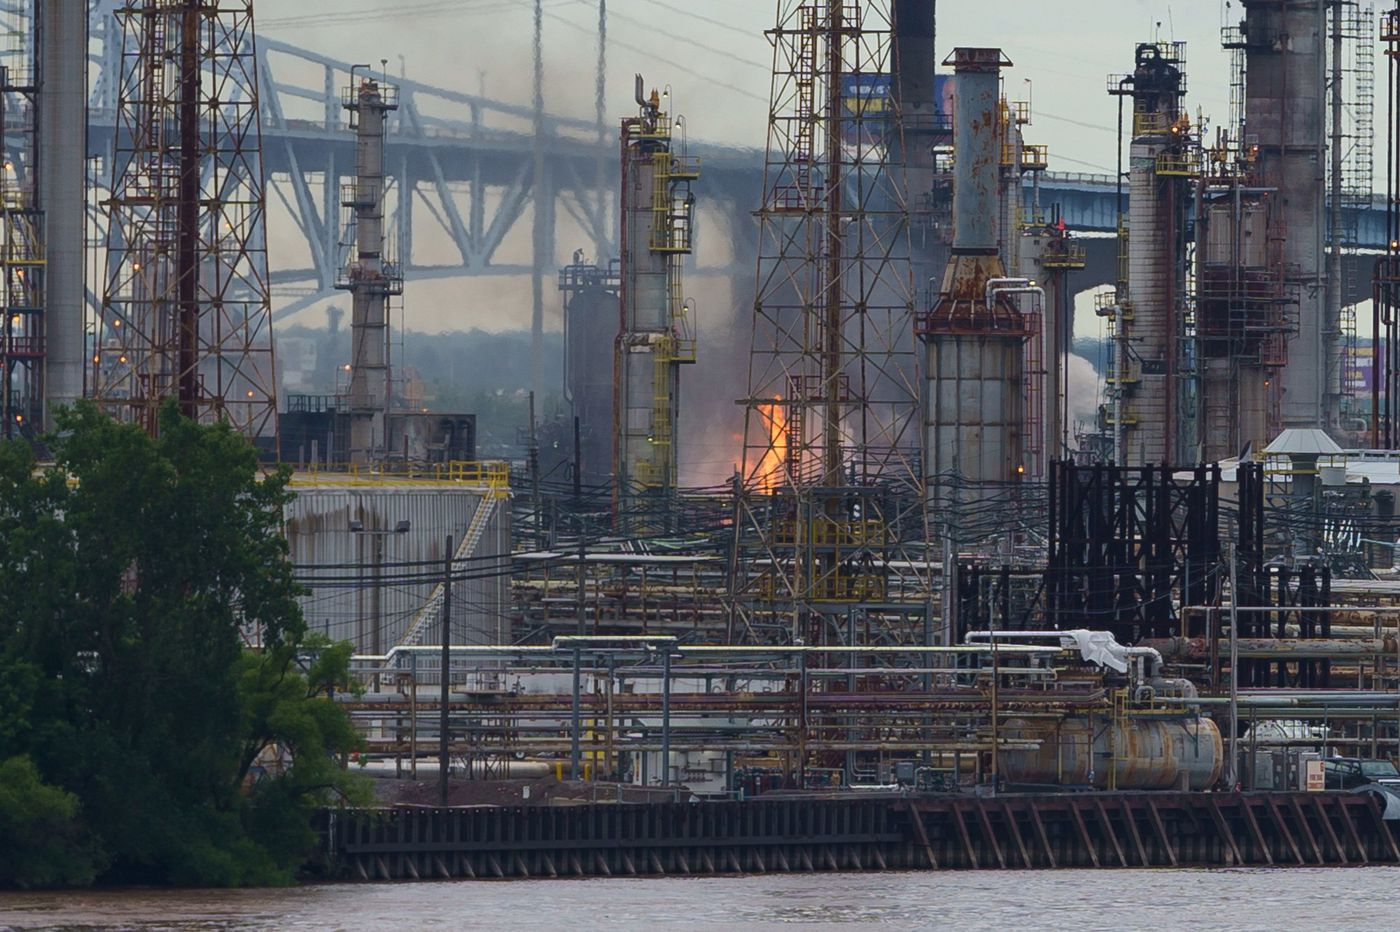 Philly refinery blast left behind a cloud of questions | Editorial